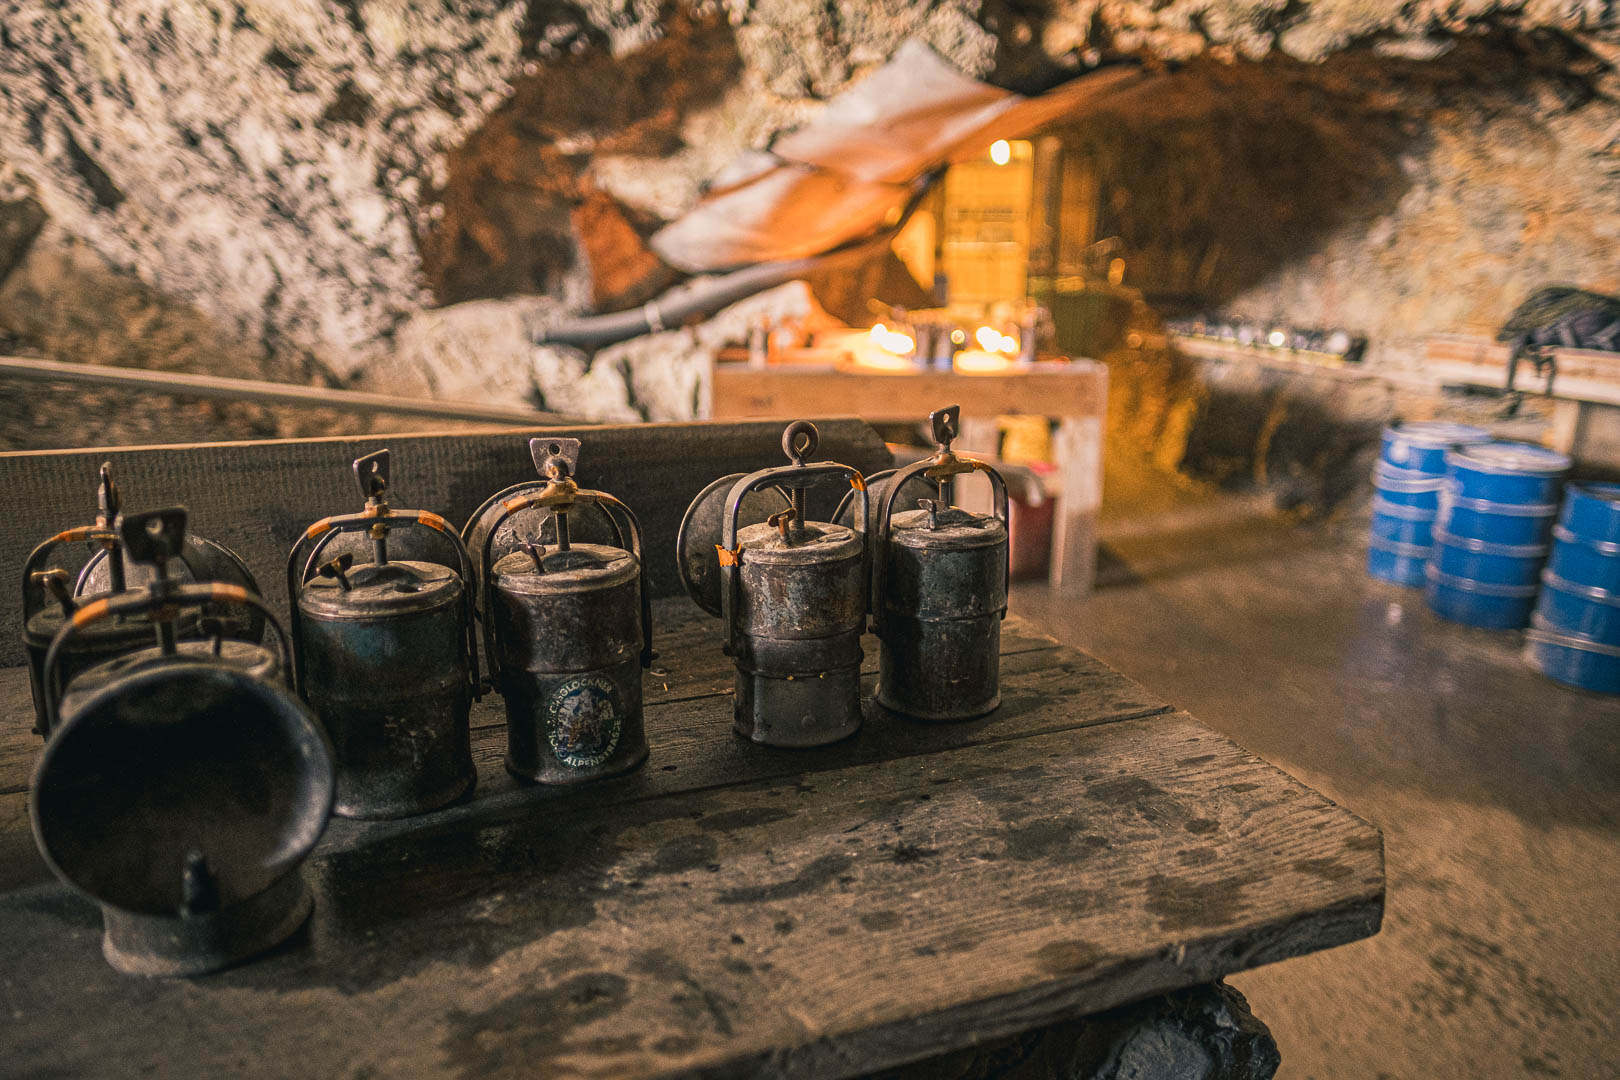 Petroleum Lamps handed out at the Entrance to the Ice Caves